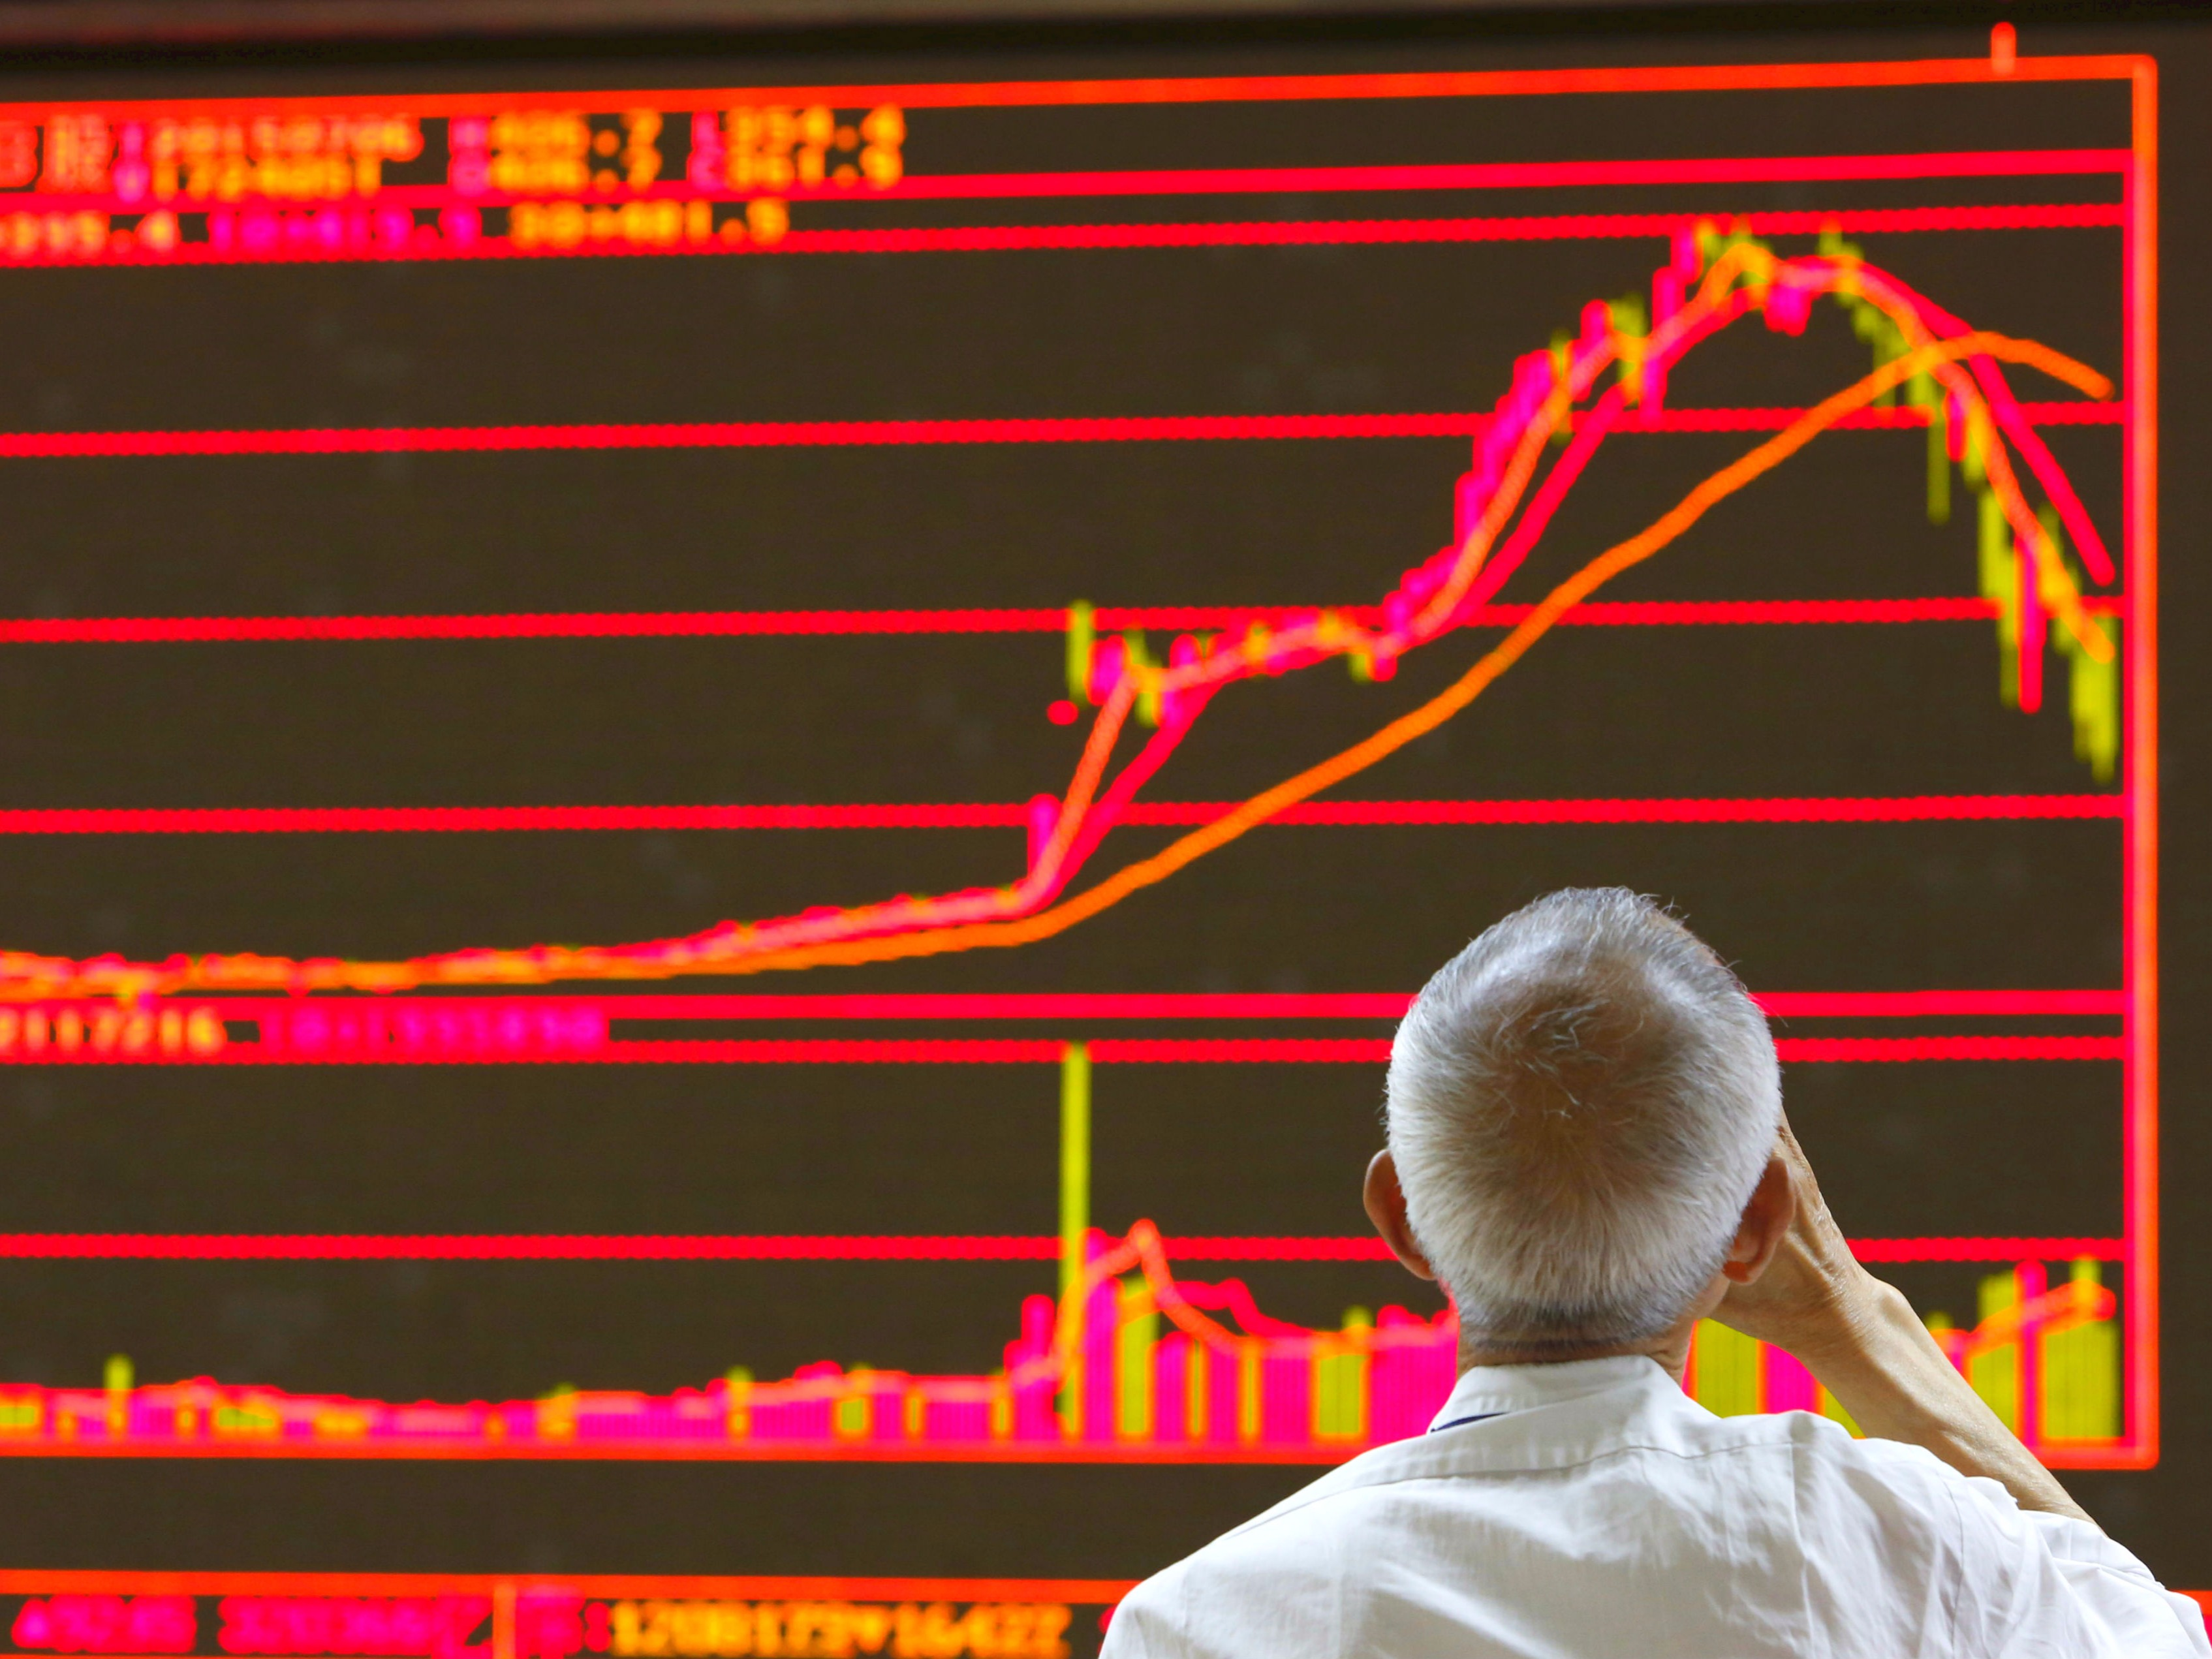 chinas-stock-market-crash-has-come-at-the-worst-possible-time-for-beijing